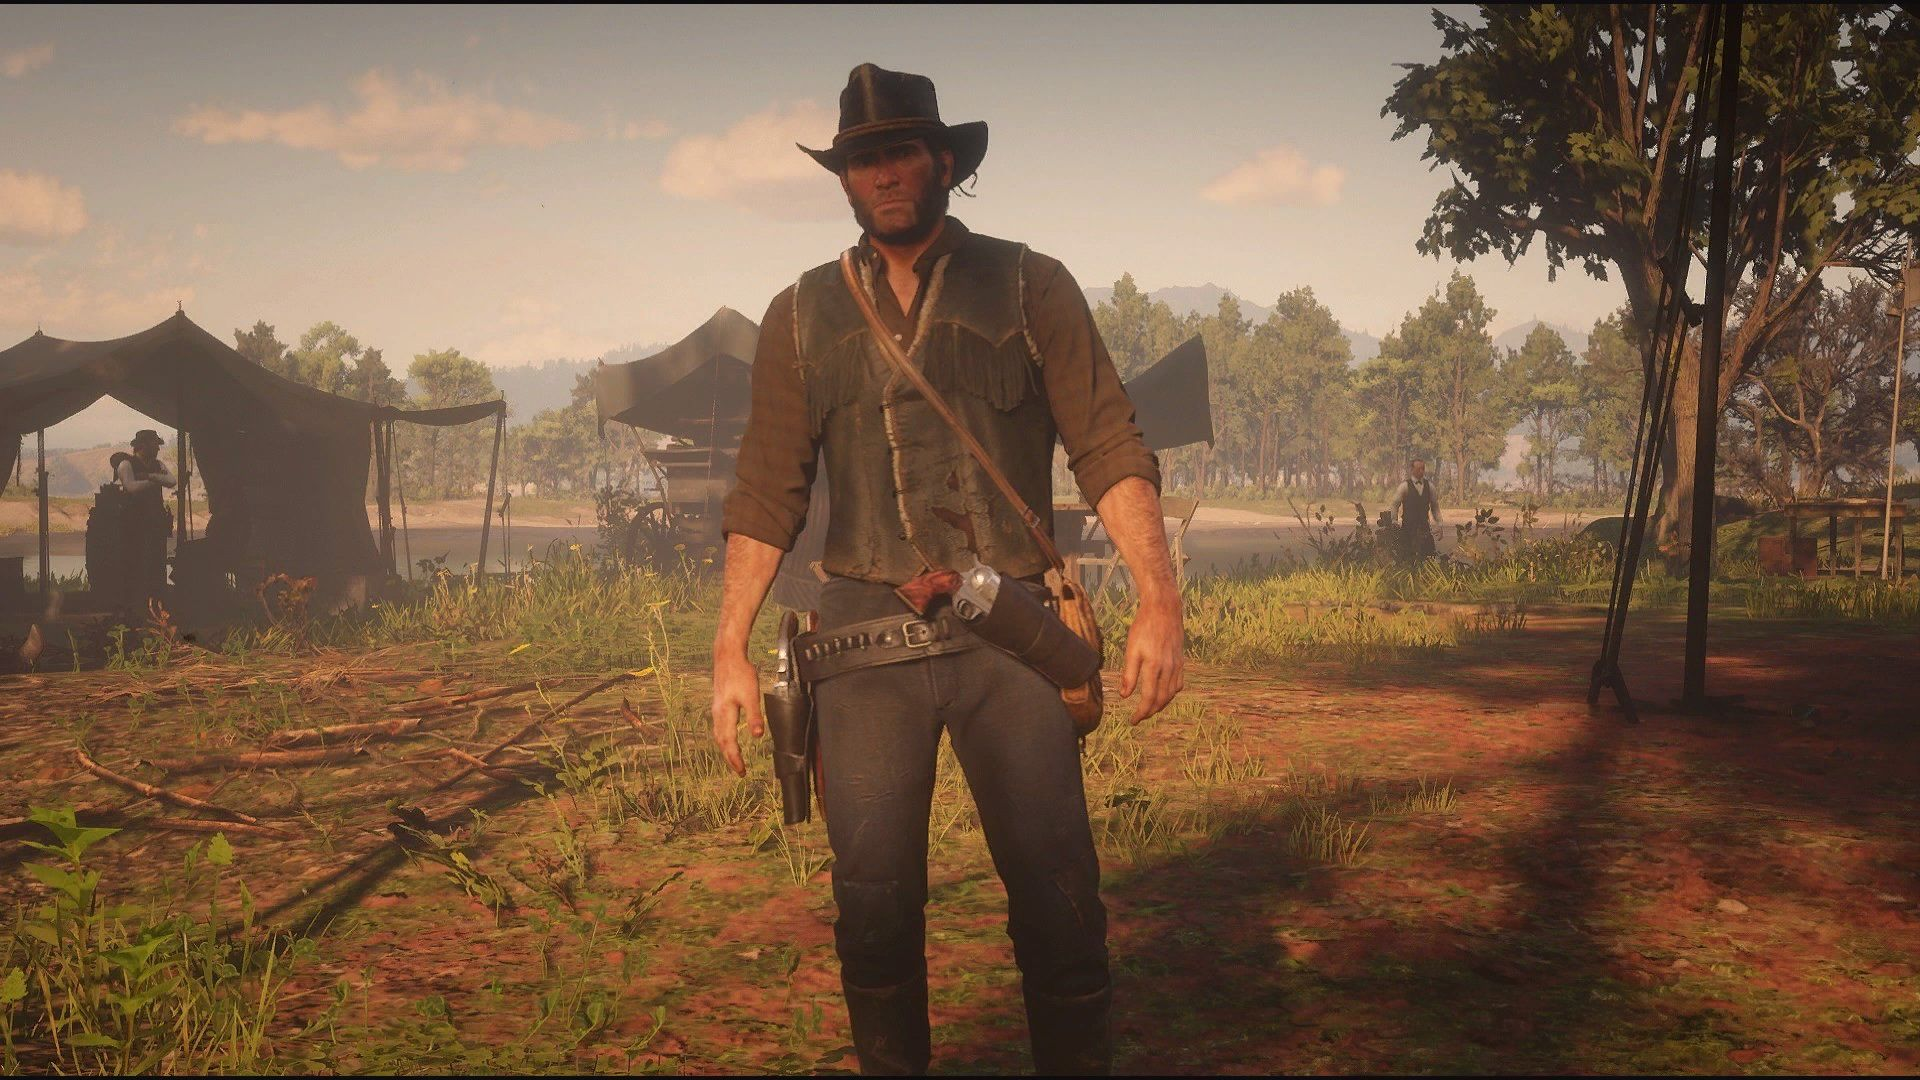 saved by Solo242 Red dead redemption ii, Red dead